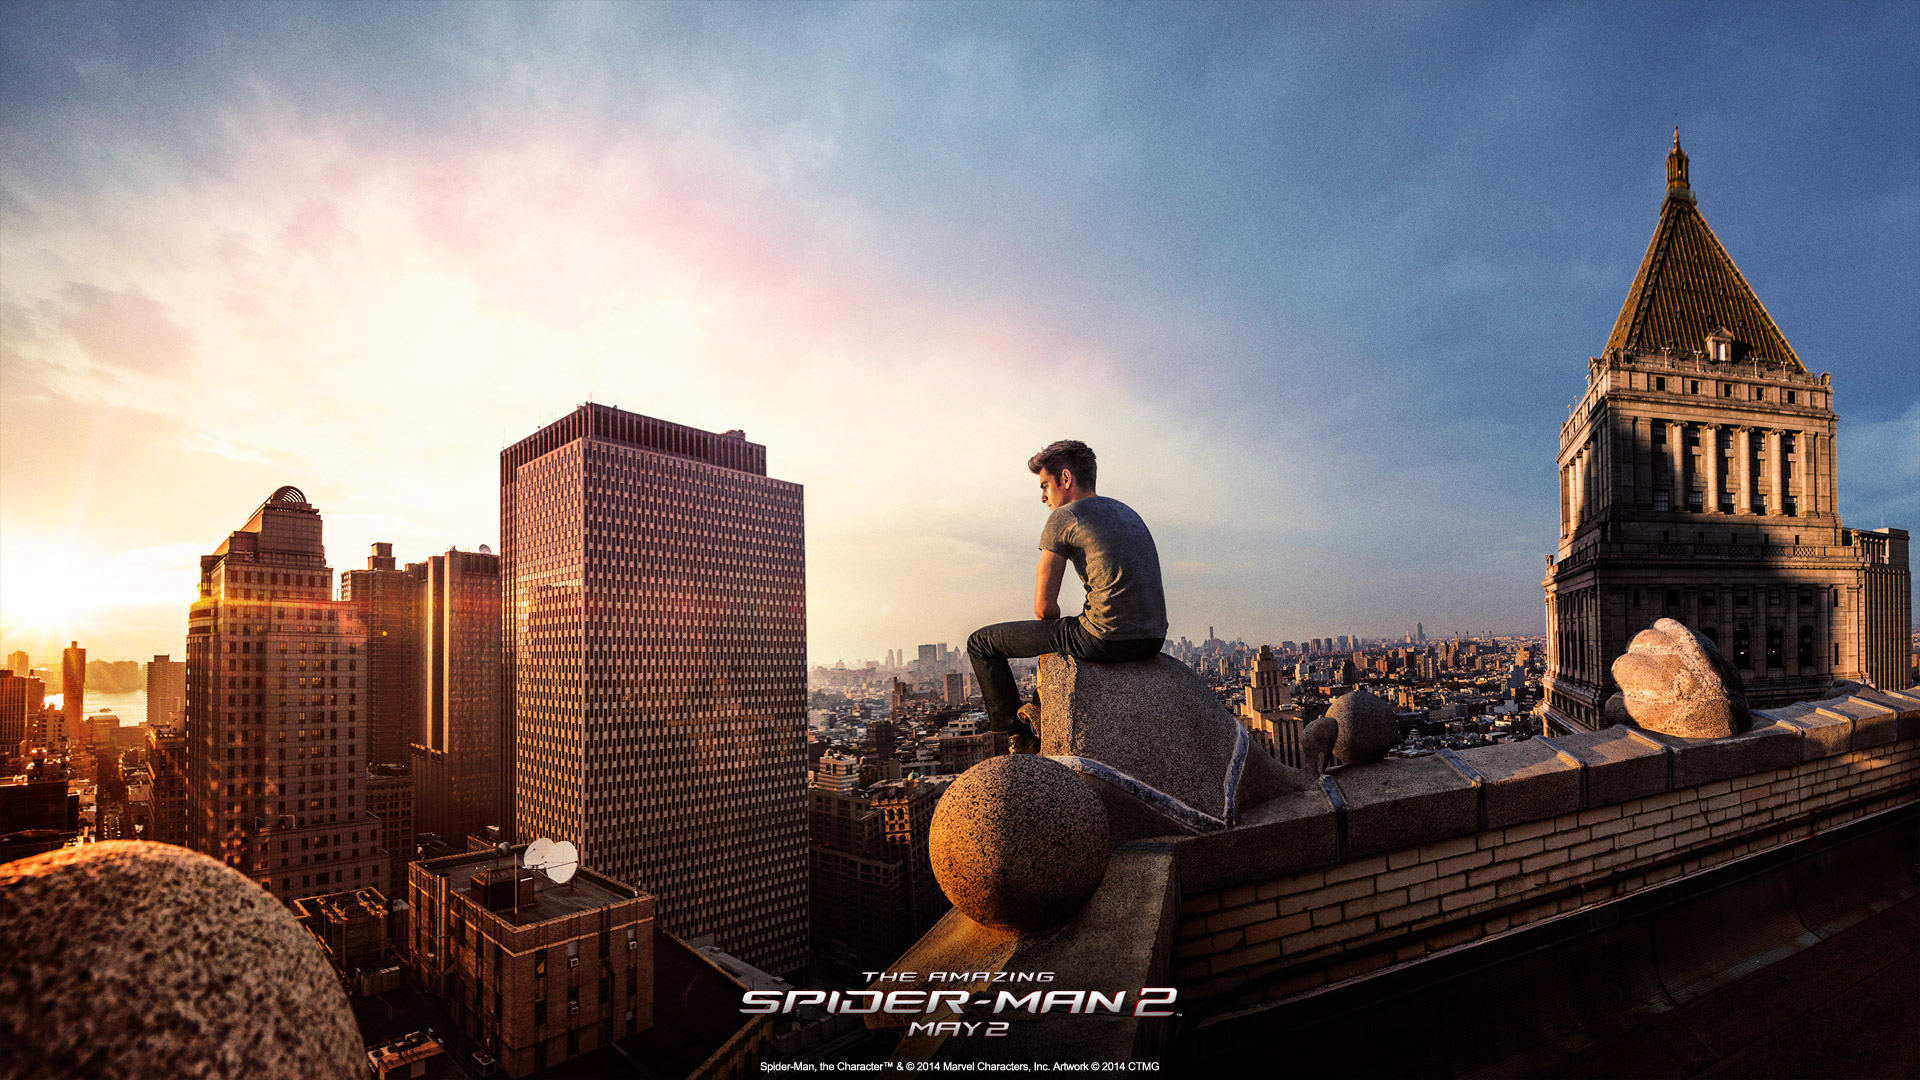 the amazing spider-man 2 wallpapers in 4k